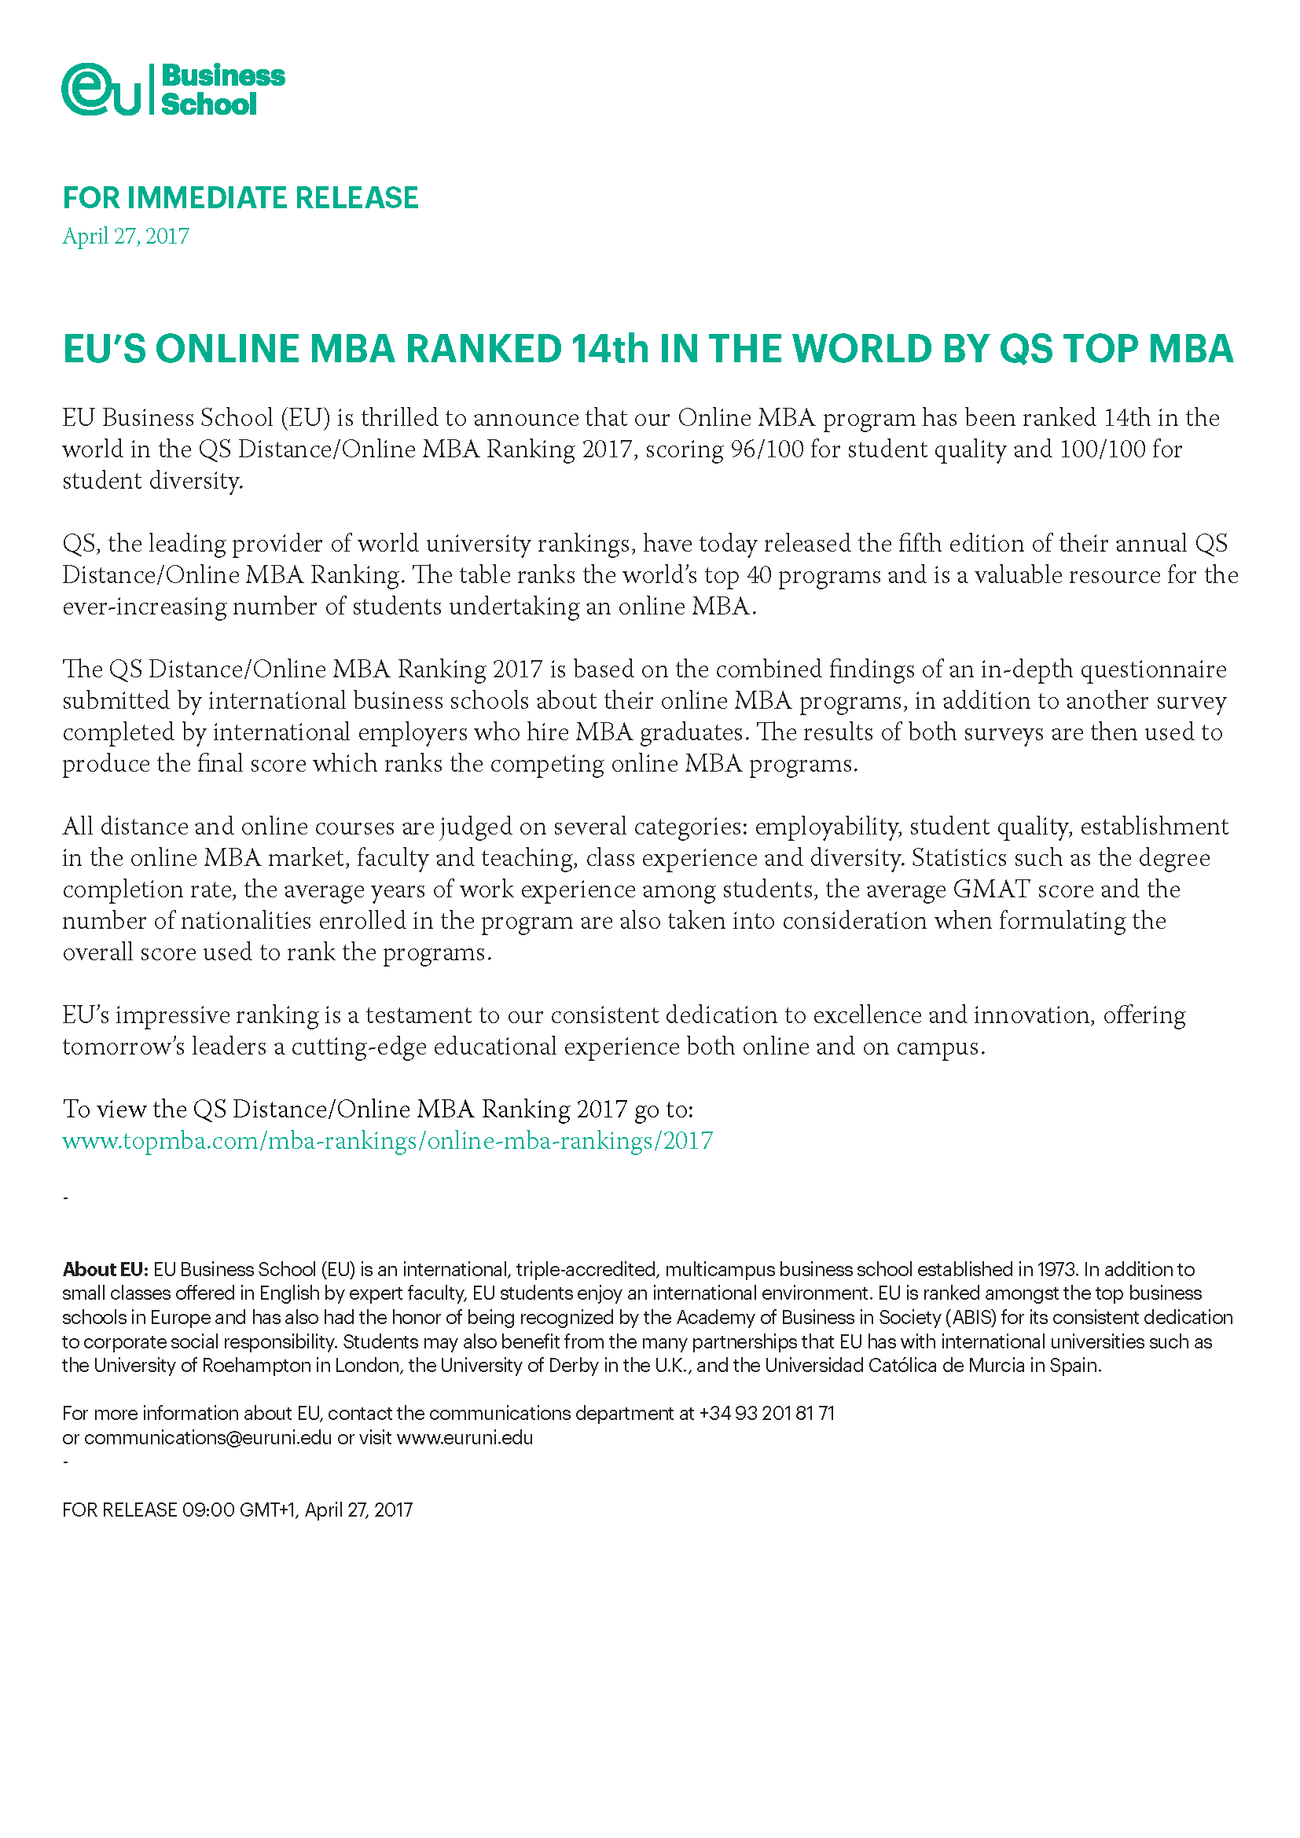 EU Business School (EU) is thrilled to announce that our Online MBA program has been ranked 14th in the world in the QS Distance/Online MBA Ranking 2017, scoring 96/100 for student quality and 100/100 for student diversity.